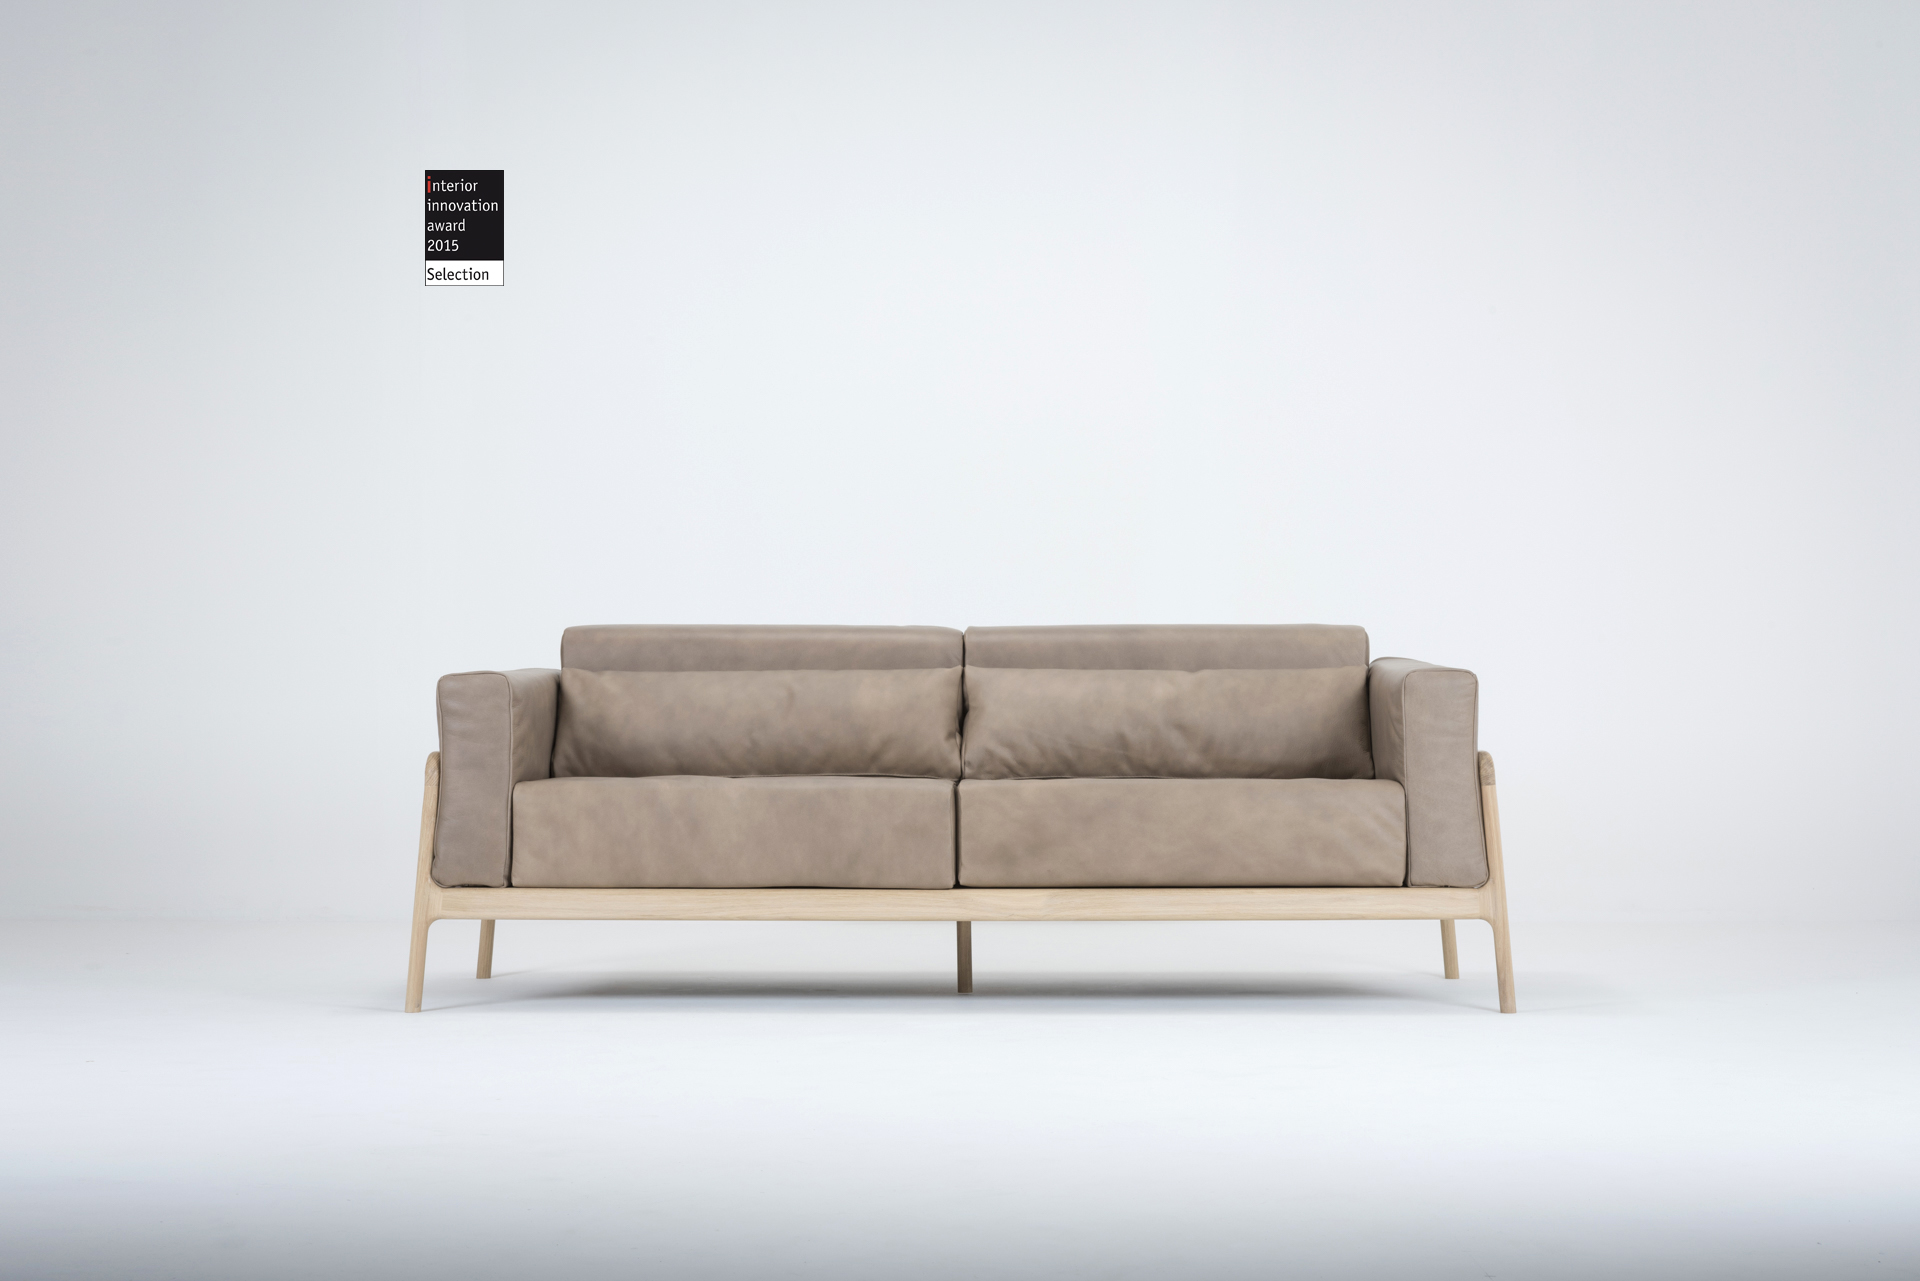 Fawn sofa - Interior Innovation Award: Selection 2015